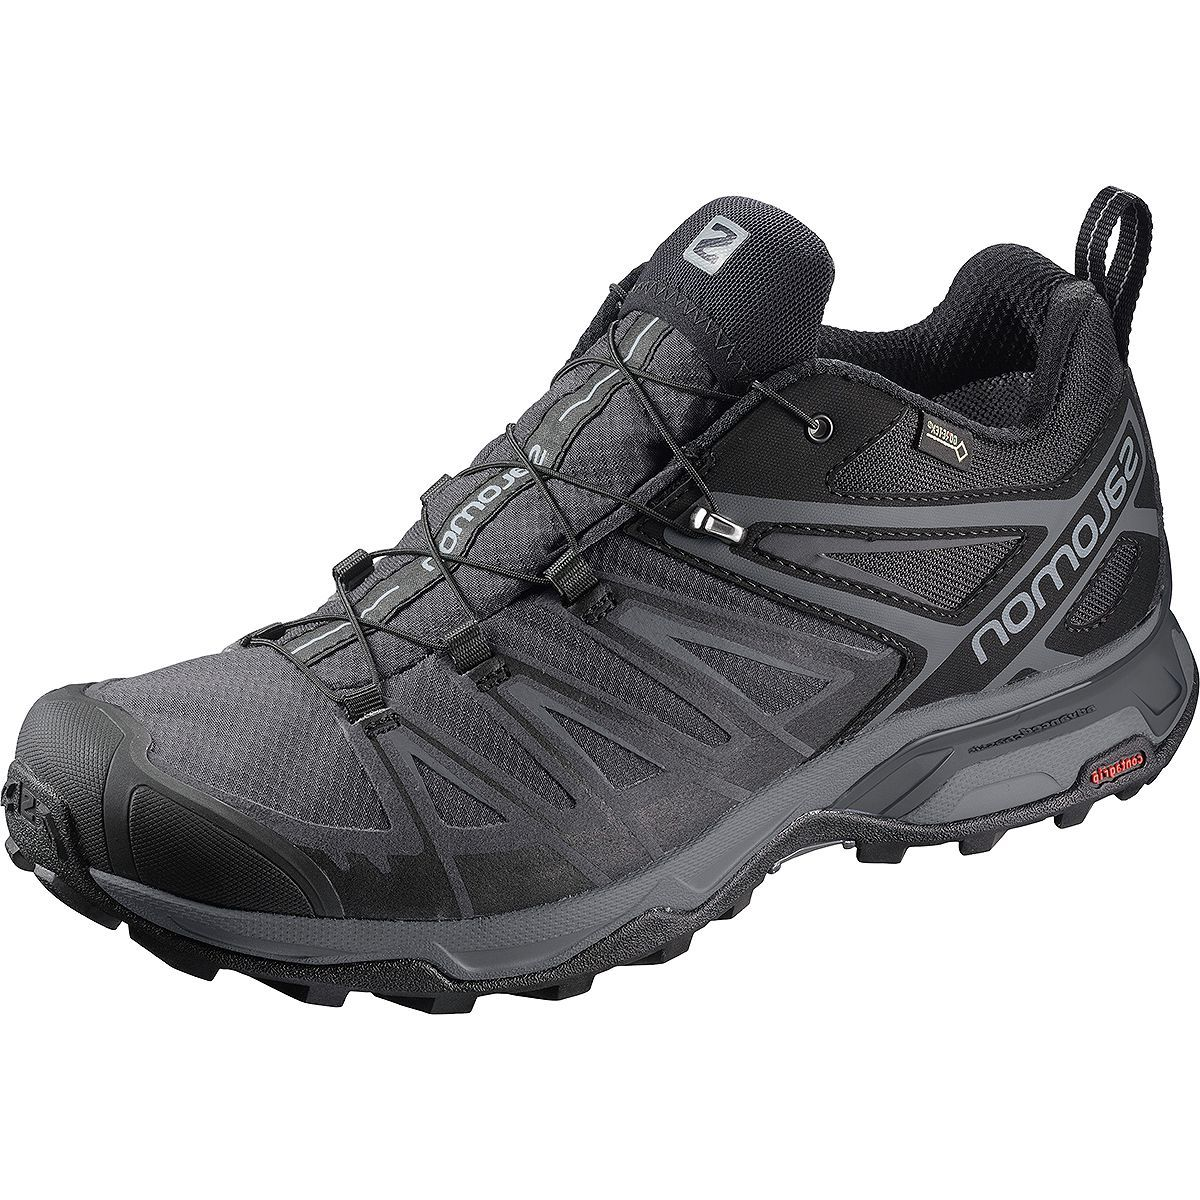 Salomon X Ultra 3 GTX Wide Hiking Shoe - Men's